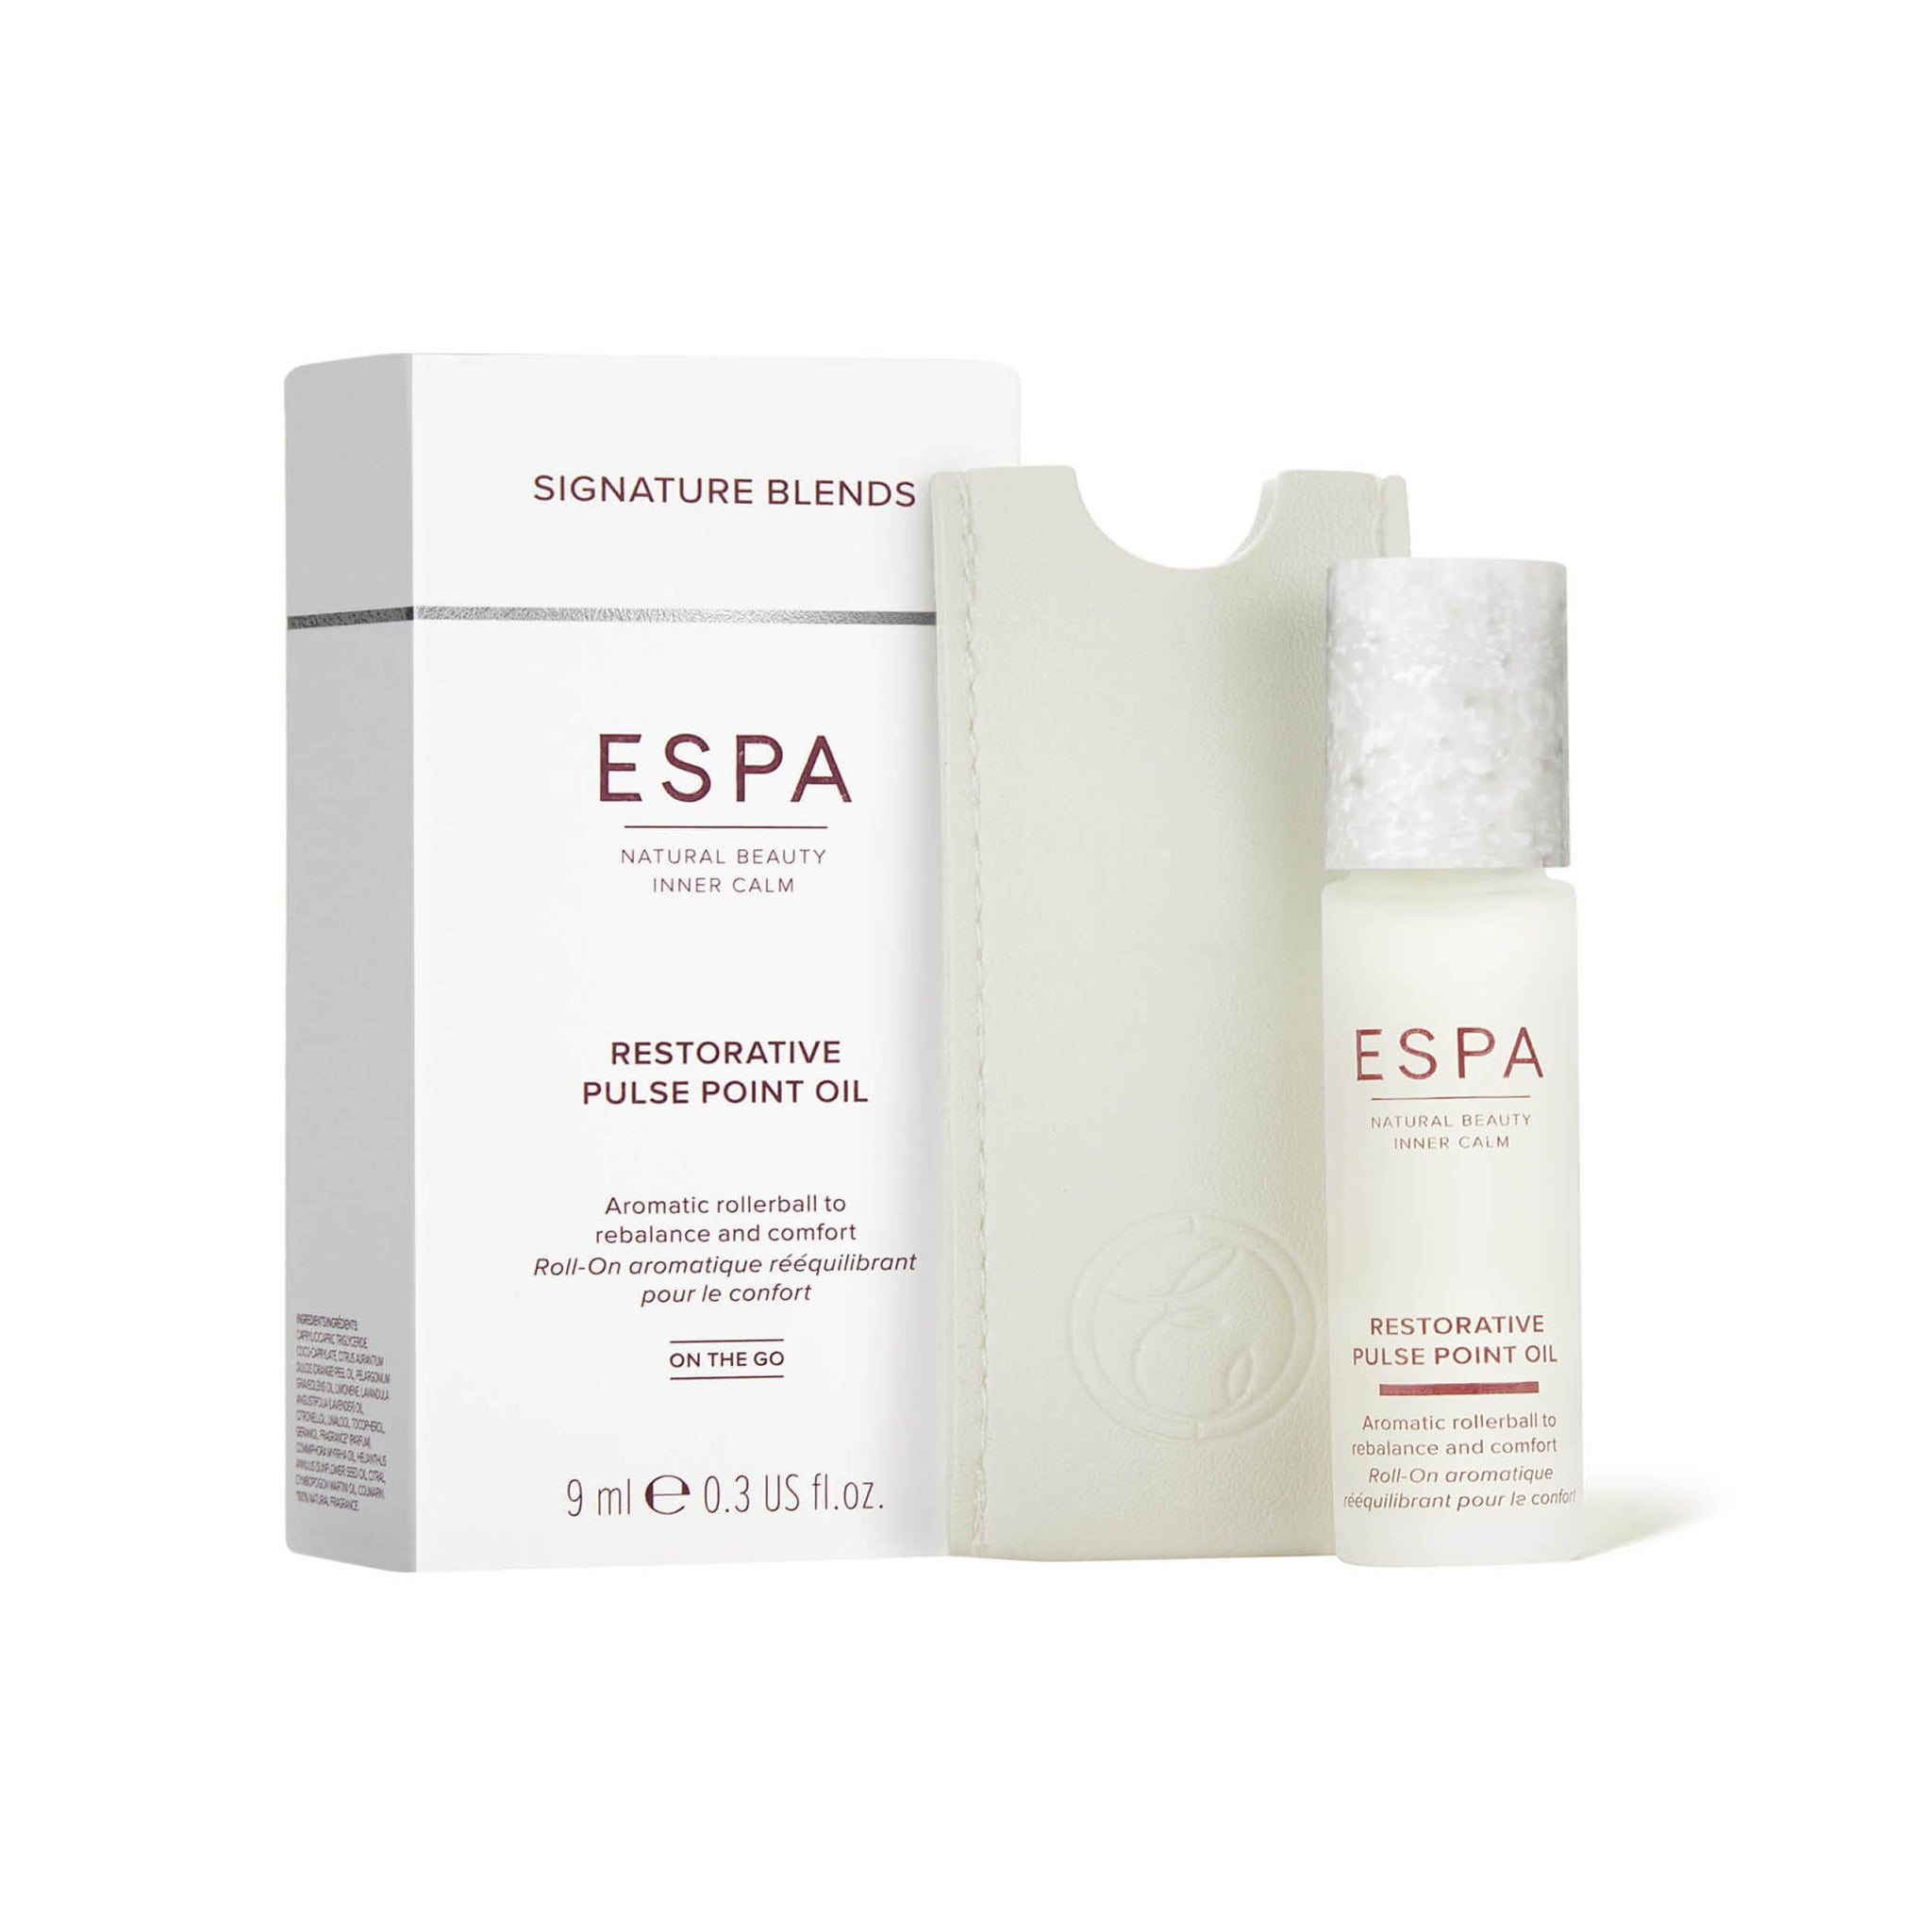 ESPA Restorative Pulse Point Oil